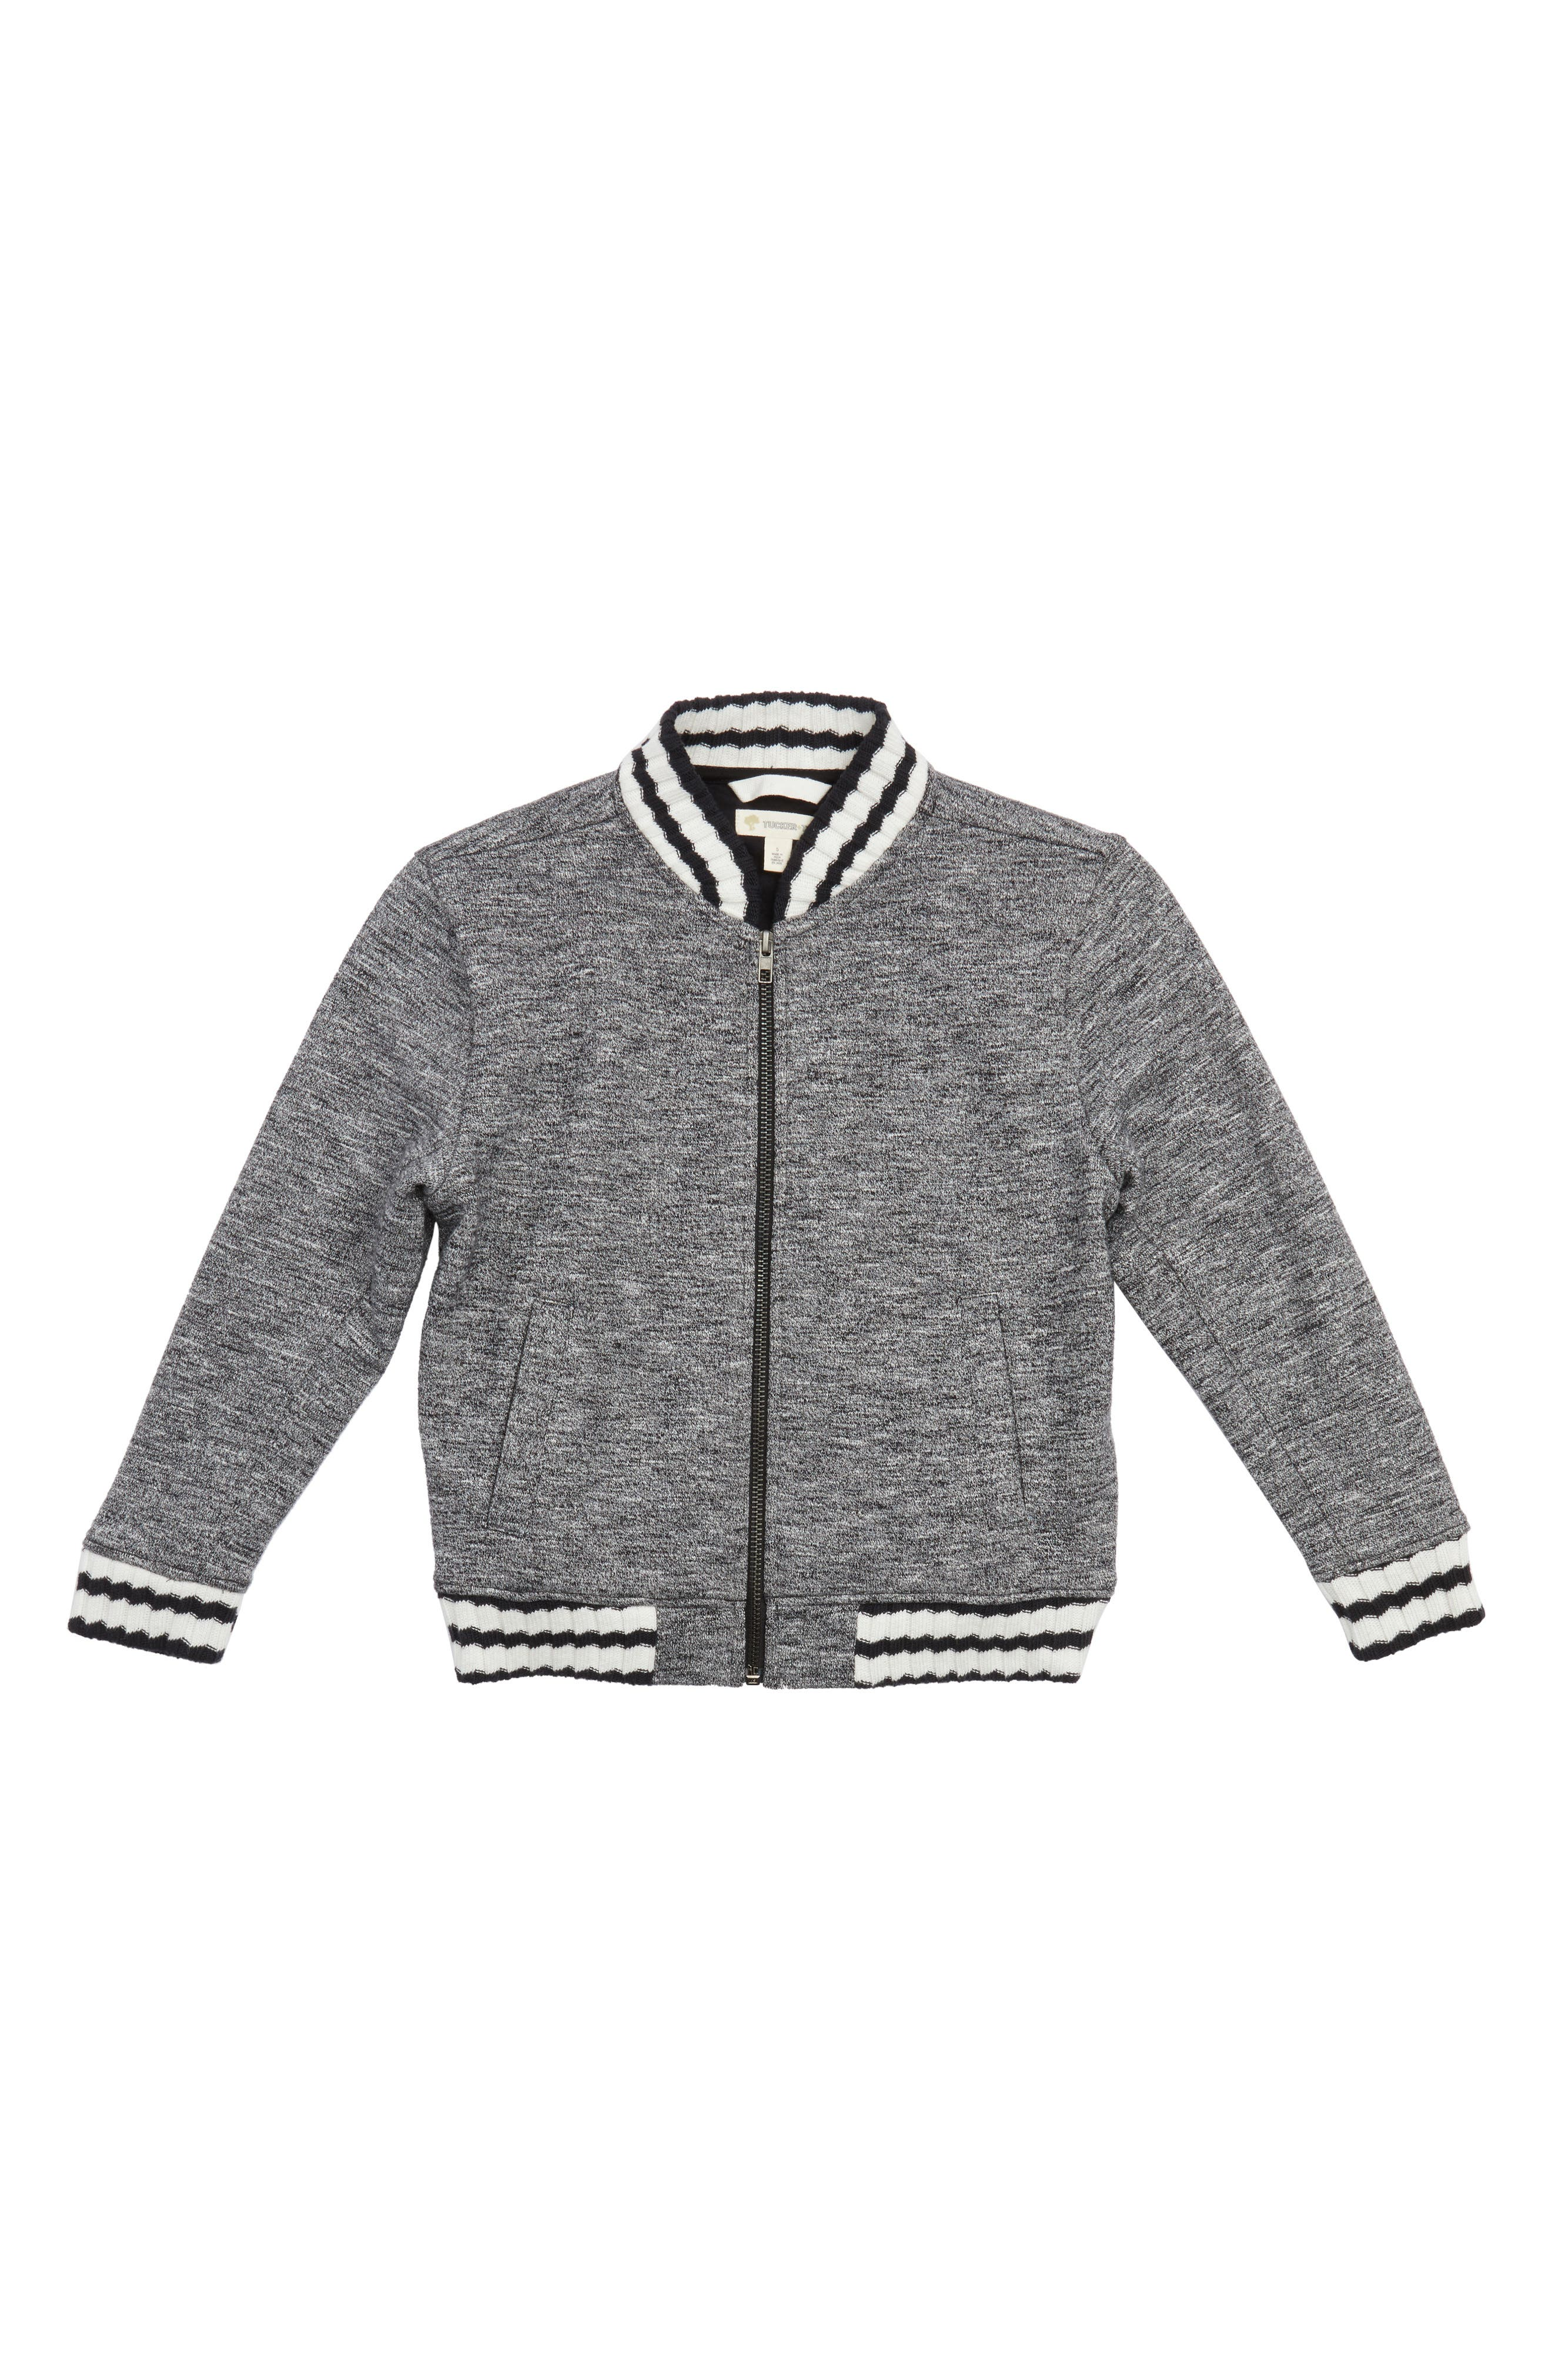 Tucker + Tate Mélange Varsity Jacket (Toddler Boys, Little Boys & Big Boys)